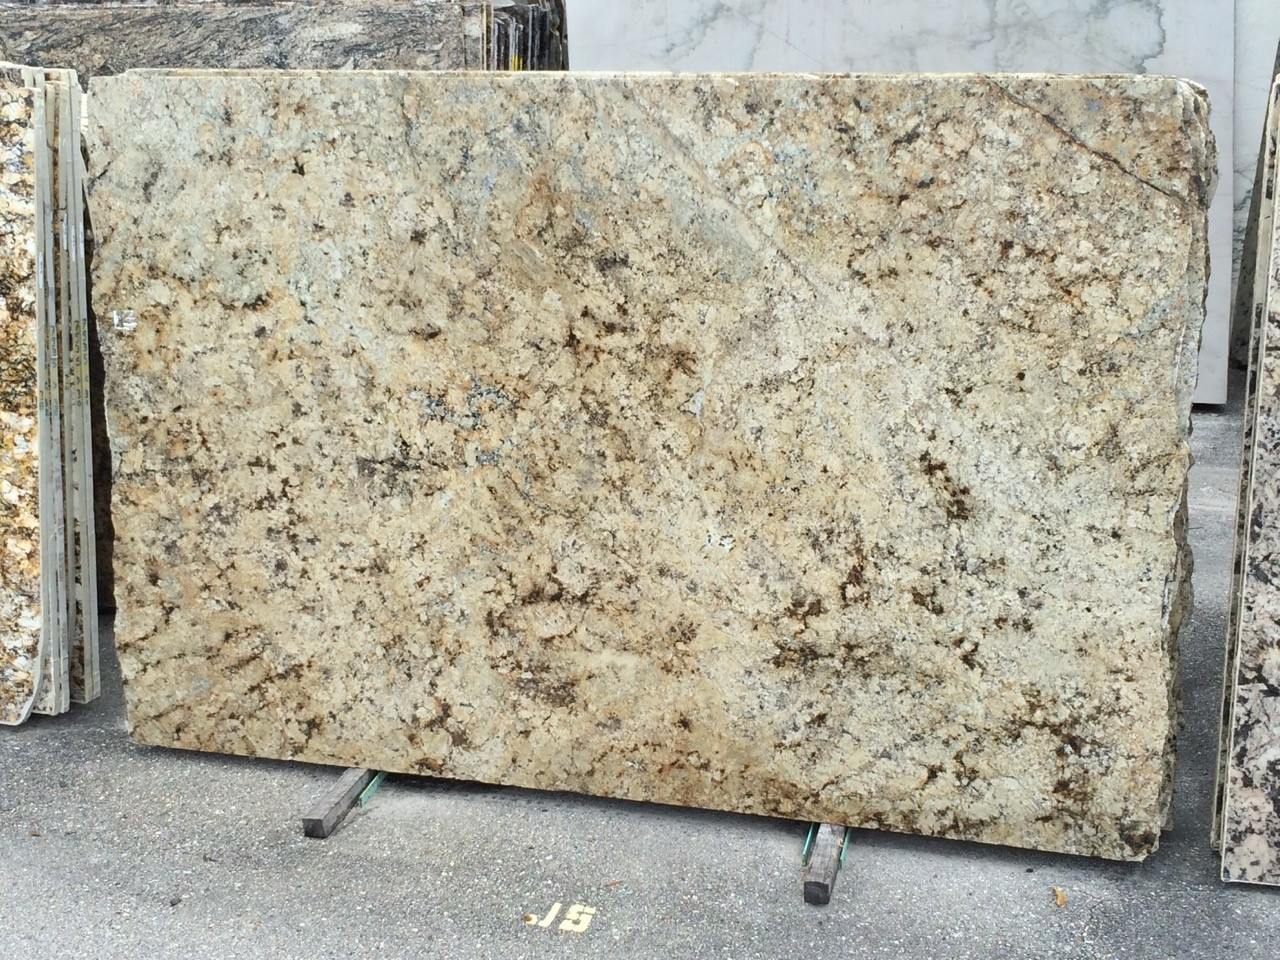 soapstone countertops maryland with Granite on Types Of Kitchen Countertops Quartz likewise Cambria Quartz Colors further Kitchens further Verde Butterfly together with Granite.